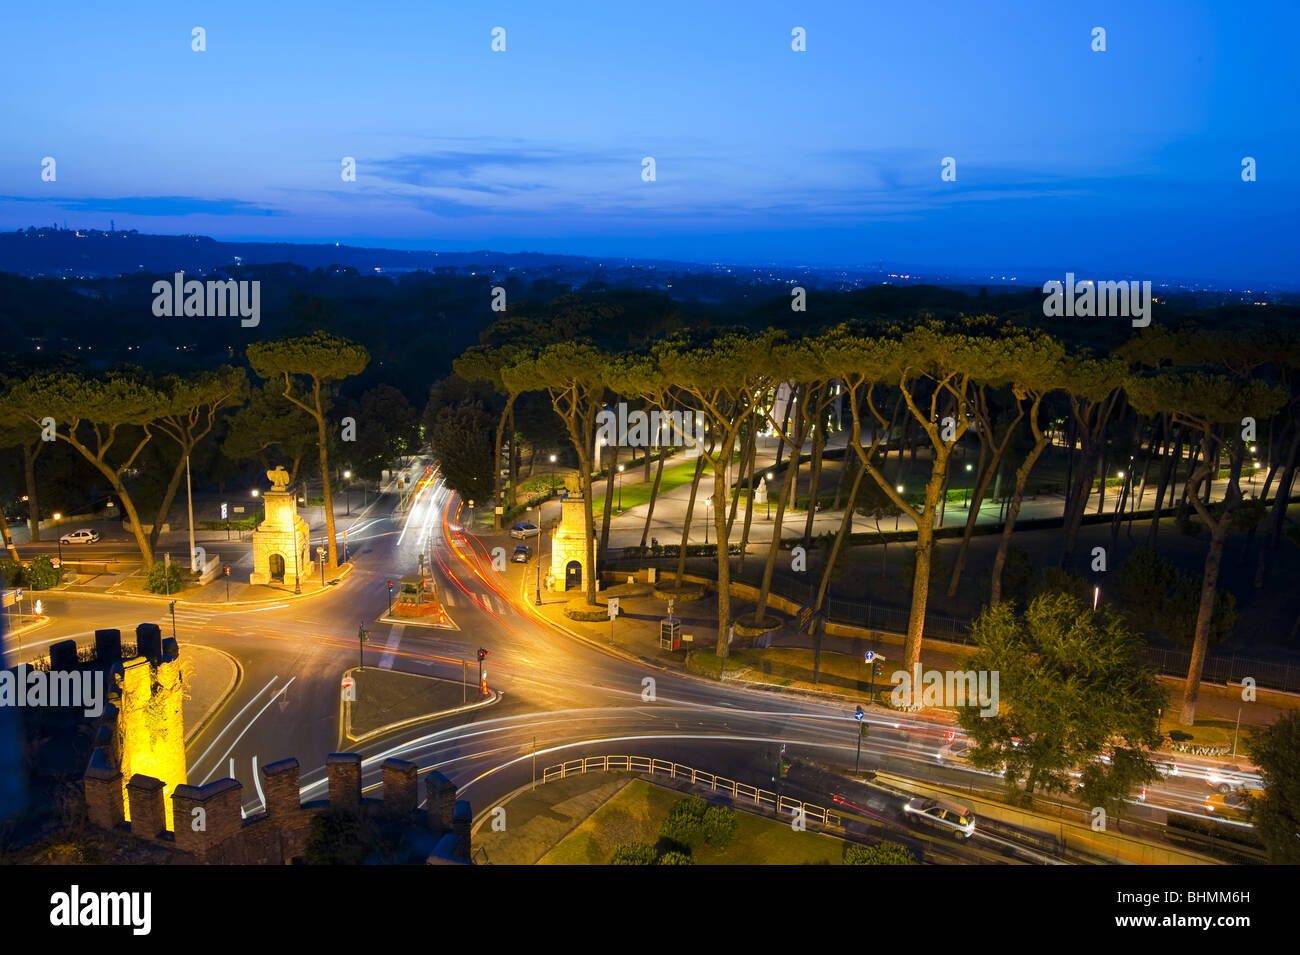 Villa Borghese at night seen from above Rome Italy - Stock Image